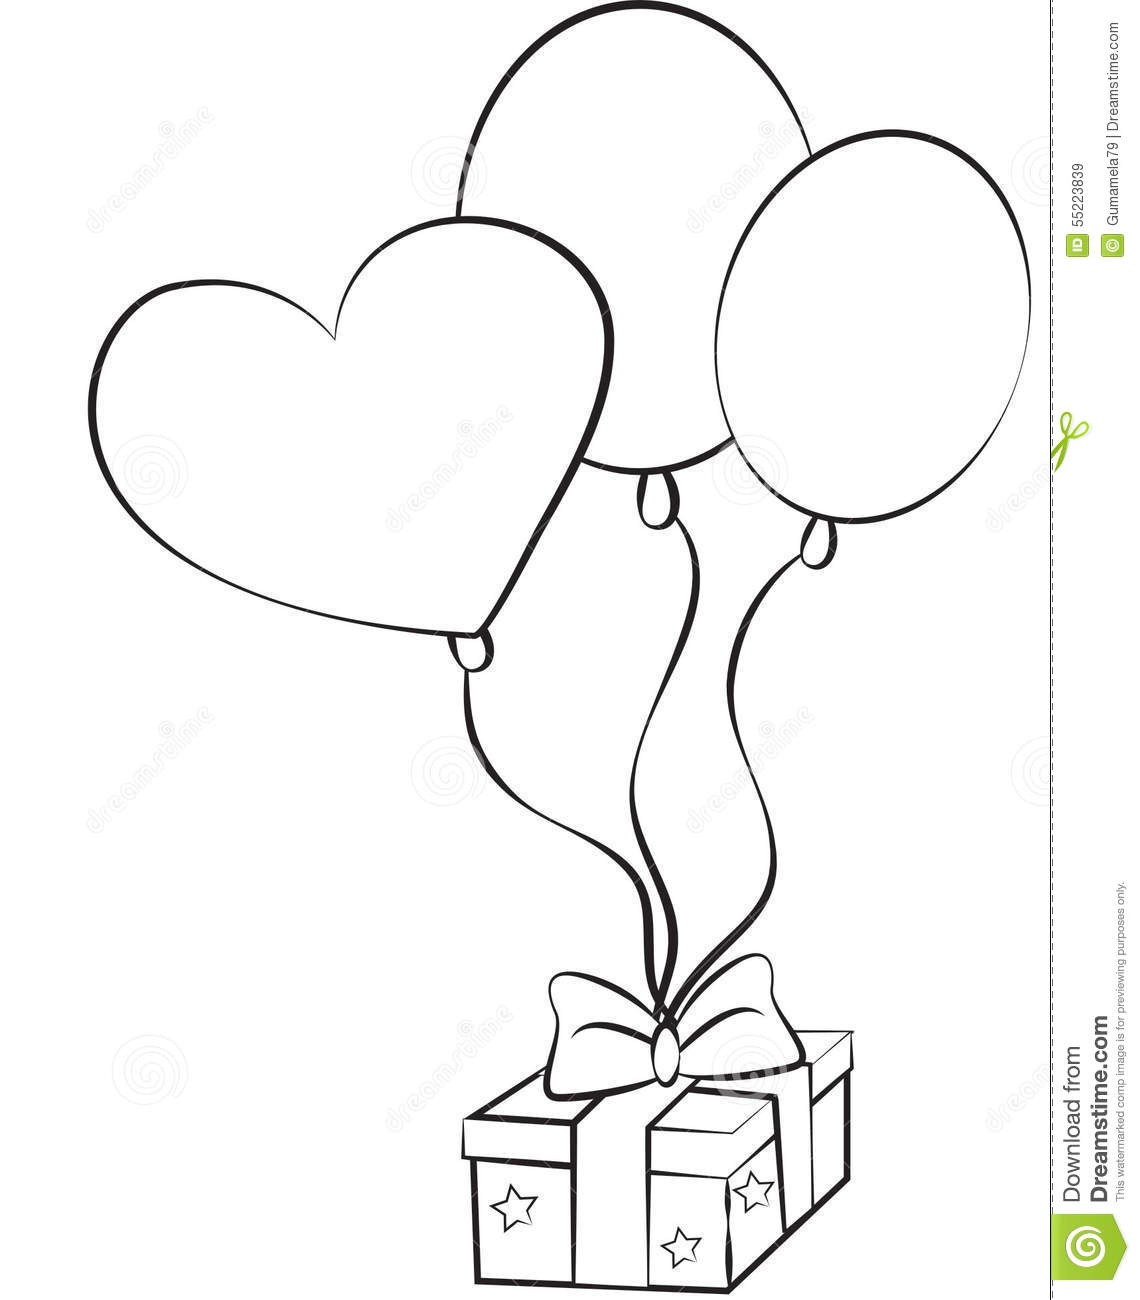 birthday balloons drawing ; stock-image-birthday-balloons-gift-illustrated-55223839